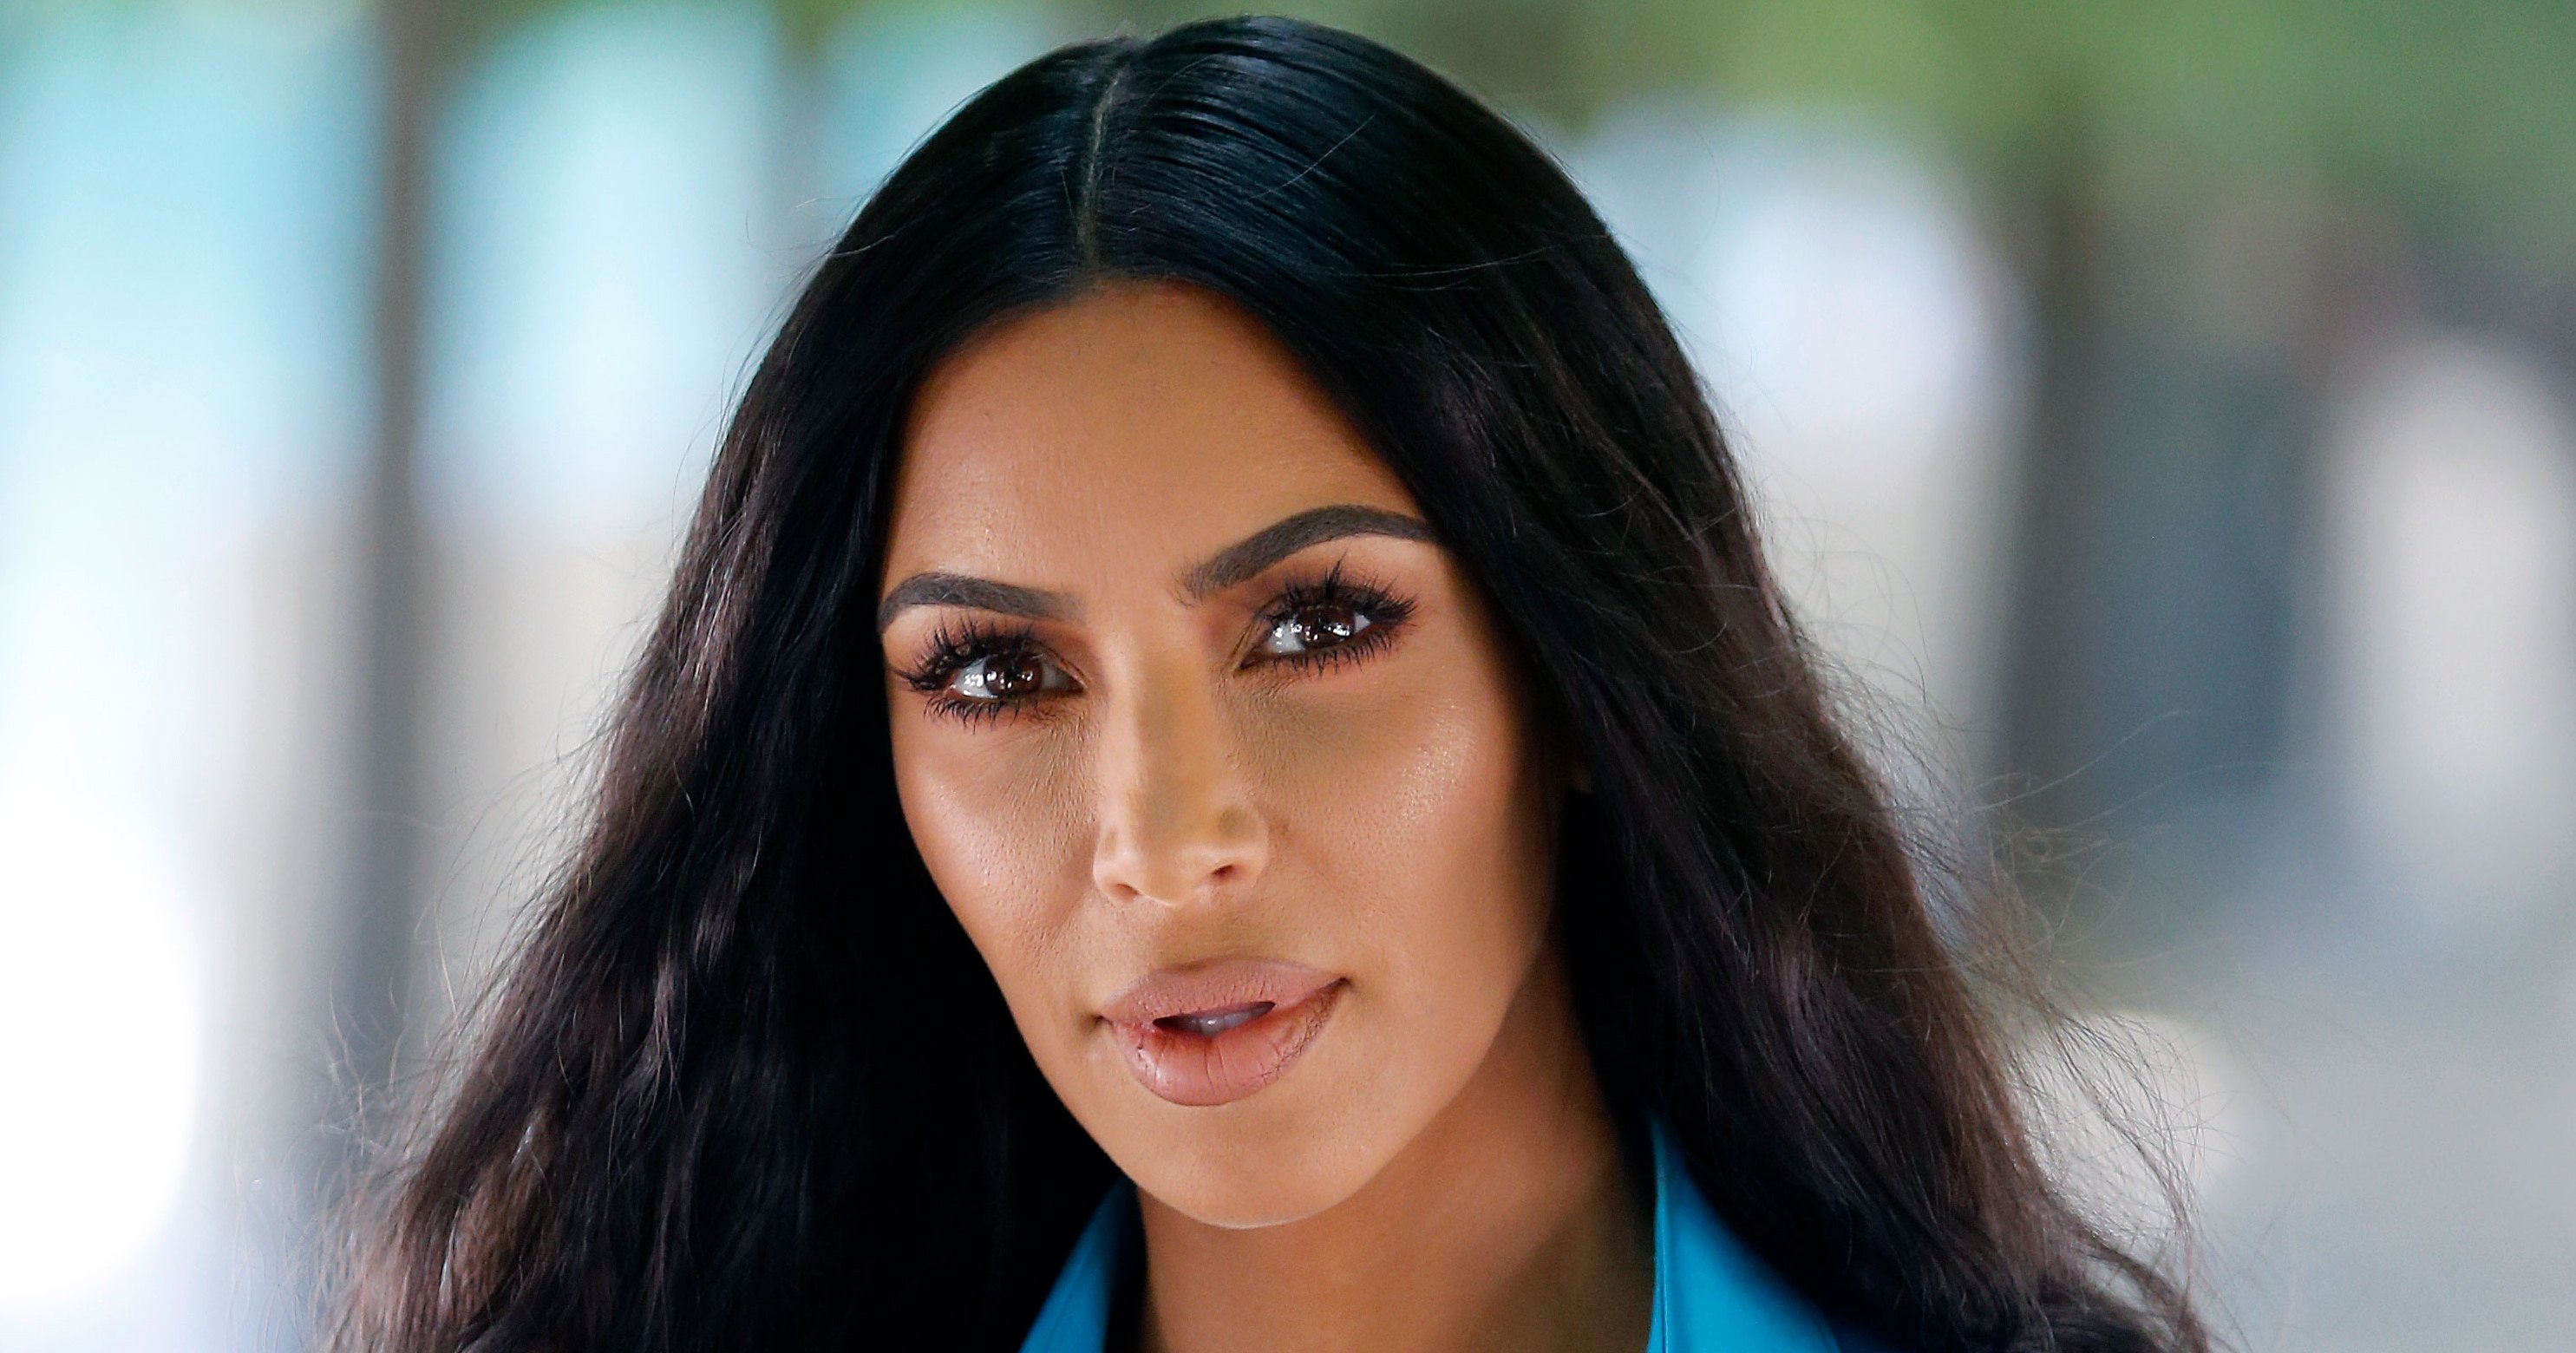 Kim Kardashian Is Receiving Requests for Assistance With Seeking Clemency